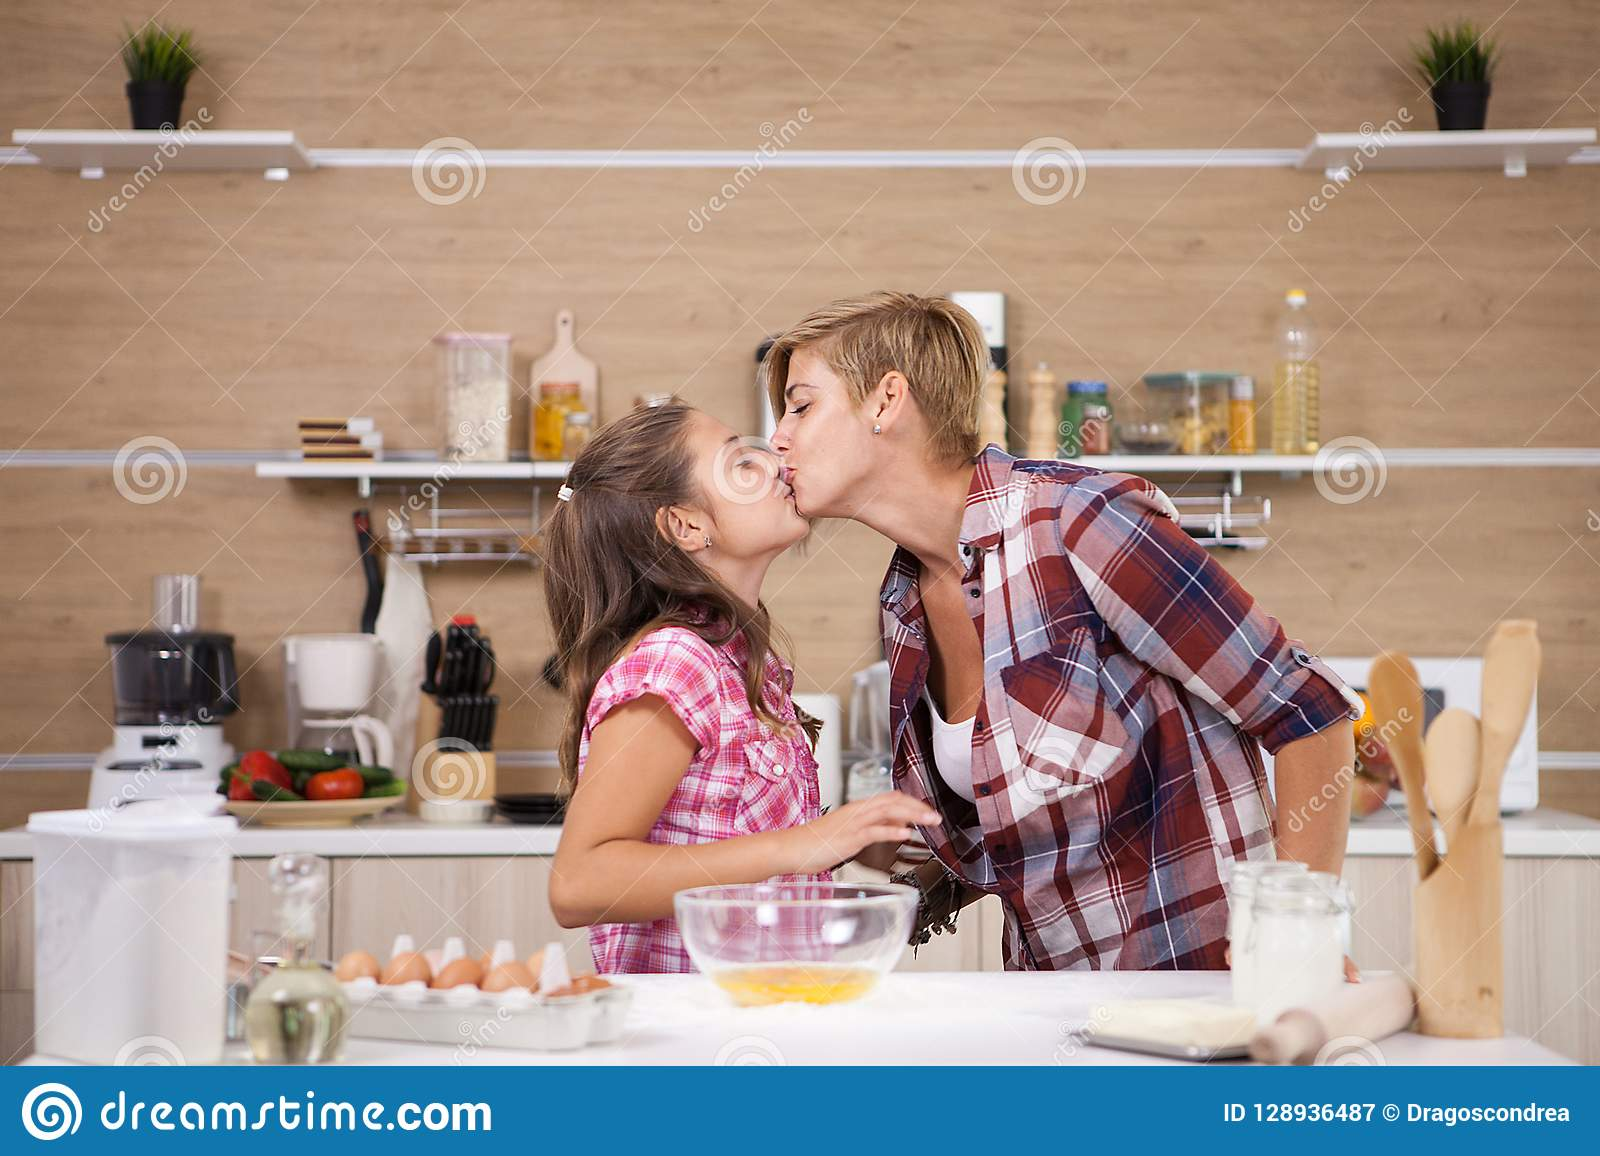 Child leping mother prepare delicious food for both of them